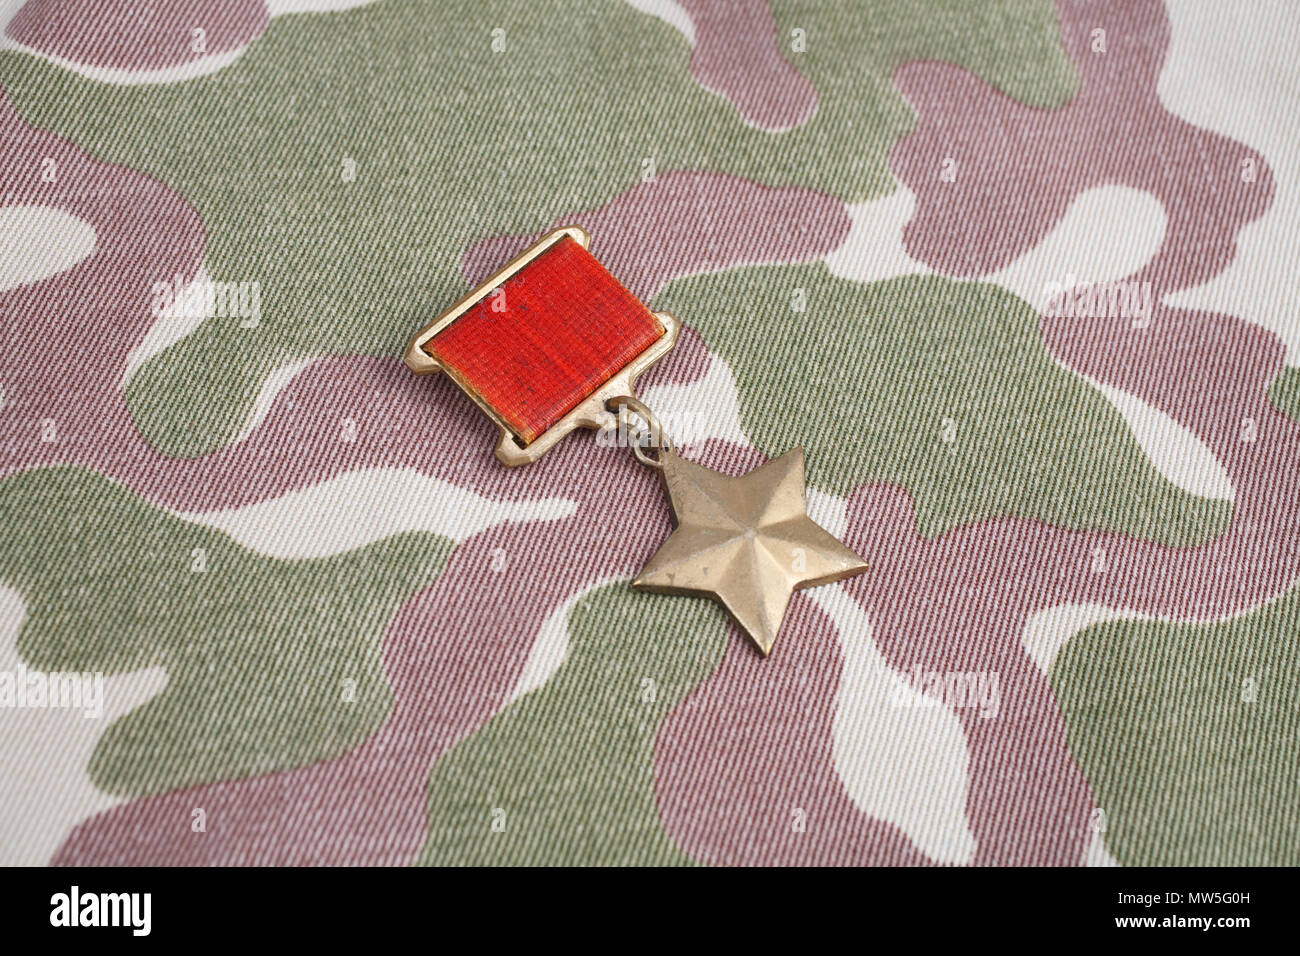 The title of Hero of the Soviet Union was awarded posthumously to General Karbyshev (28 fe 32